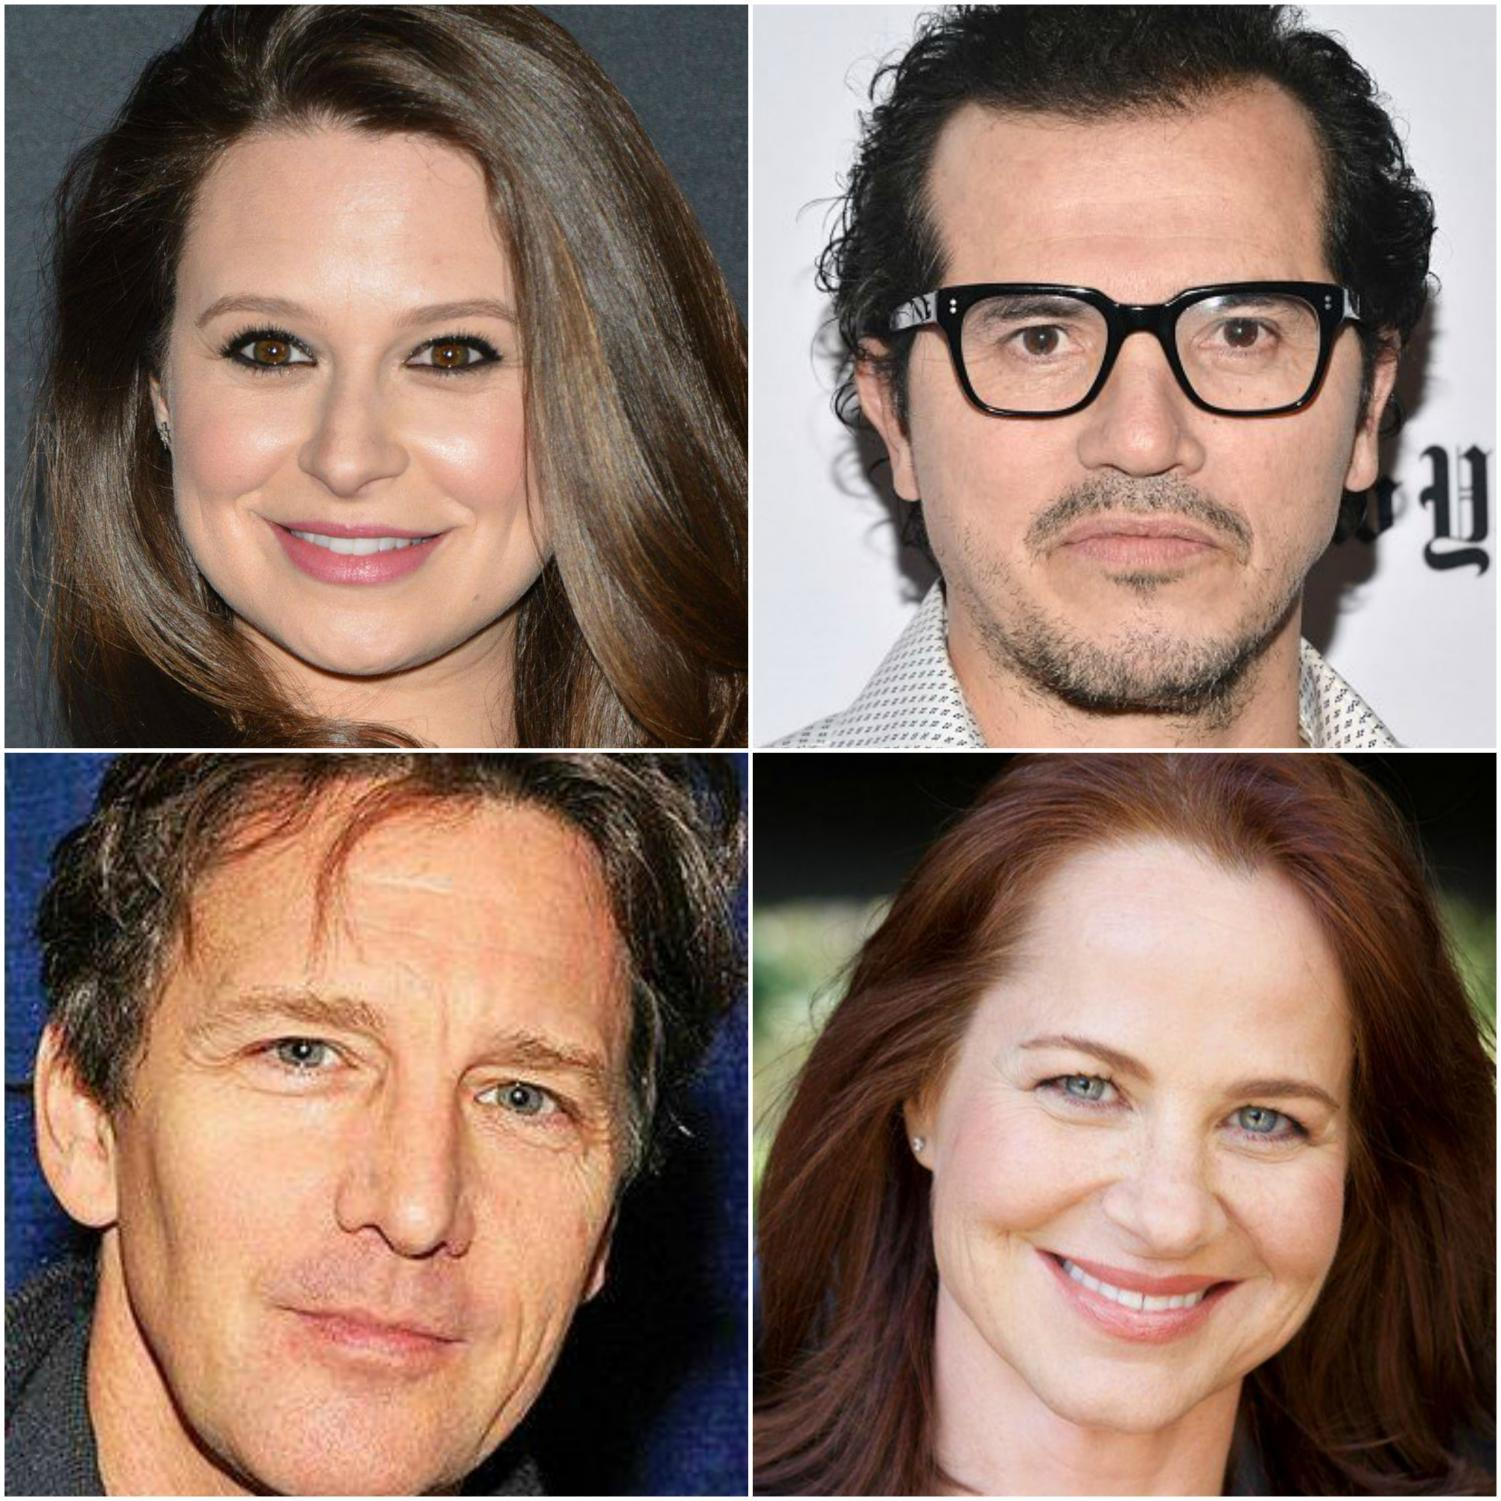 NYU alumni Katie Lowes, John Leguizamo, Andrew McCarthy and Deirdre Lovejoy, who were among those mentioned in a recent New York Times article for buying bots from the company Devumi.